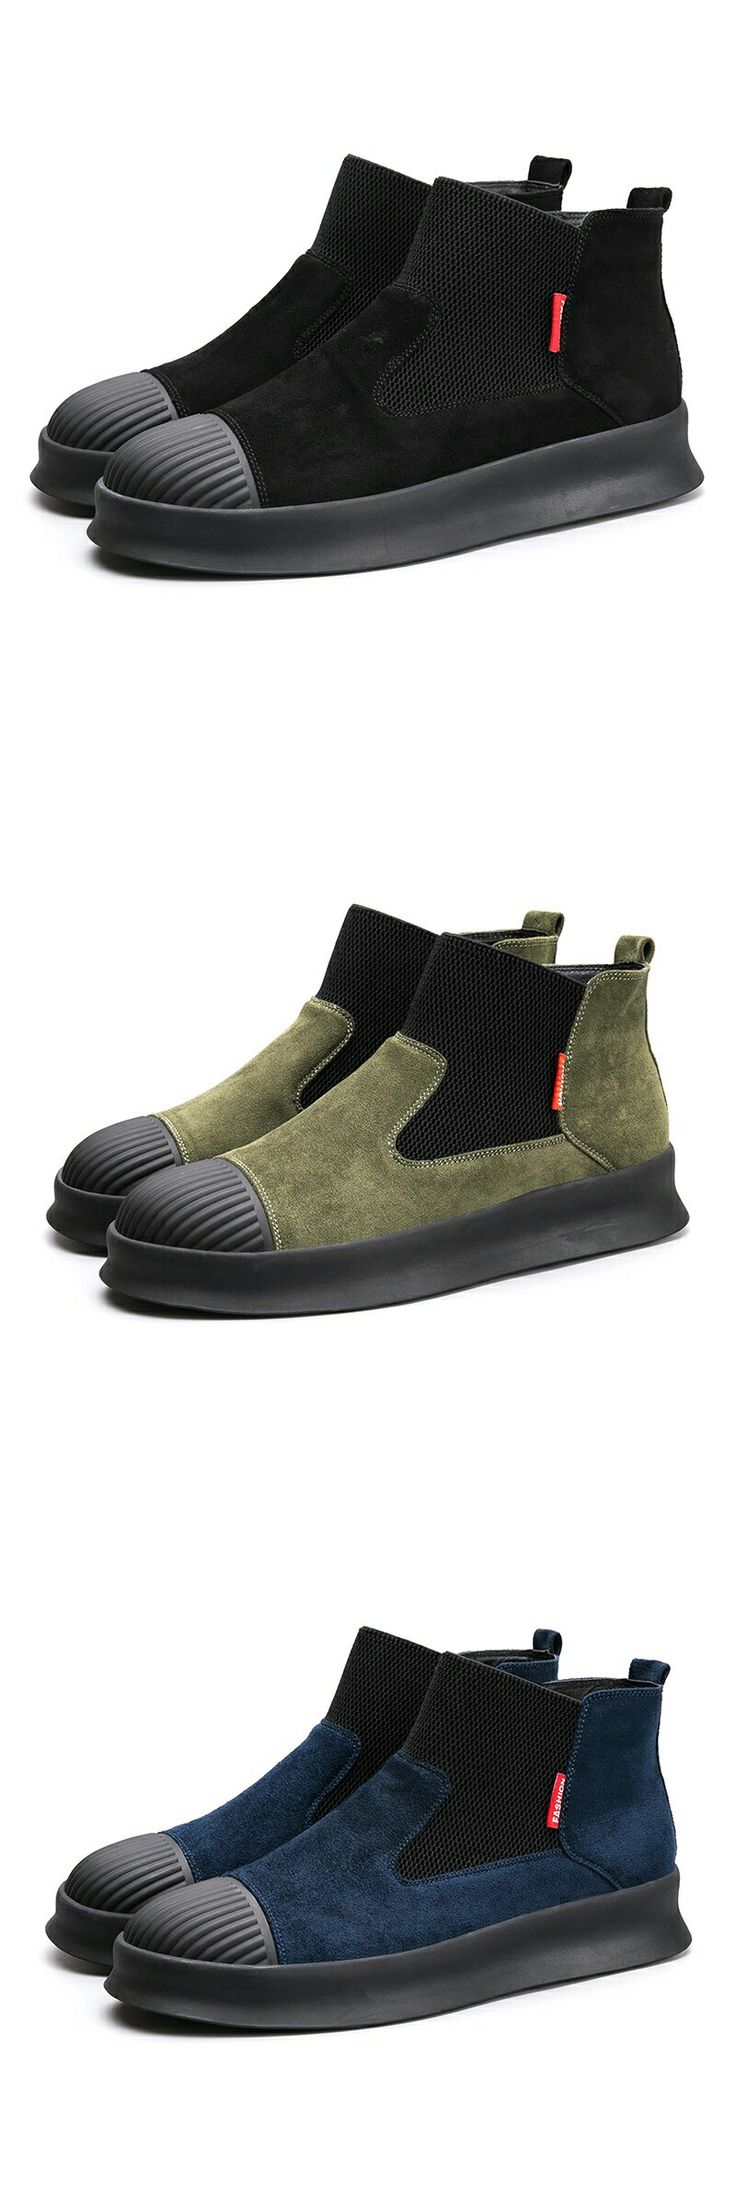 < Click to buy > Prelesty Brand High Quality Vintage Men Winter Warm High Top Men's Casual Shoes Breathable Classic Sock Shoe Design